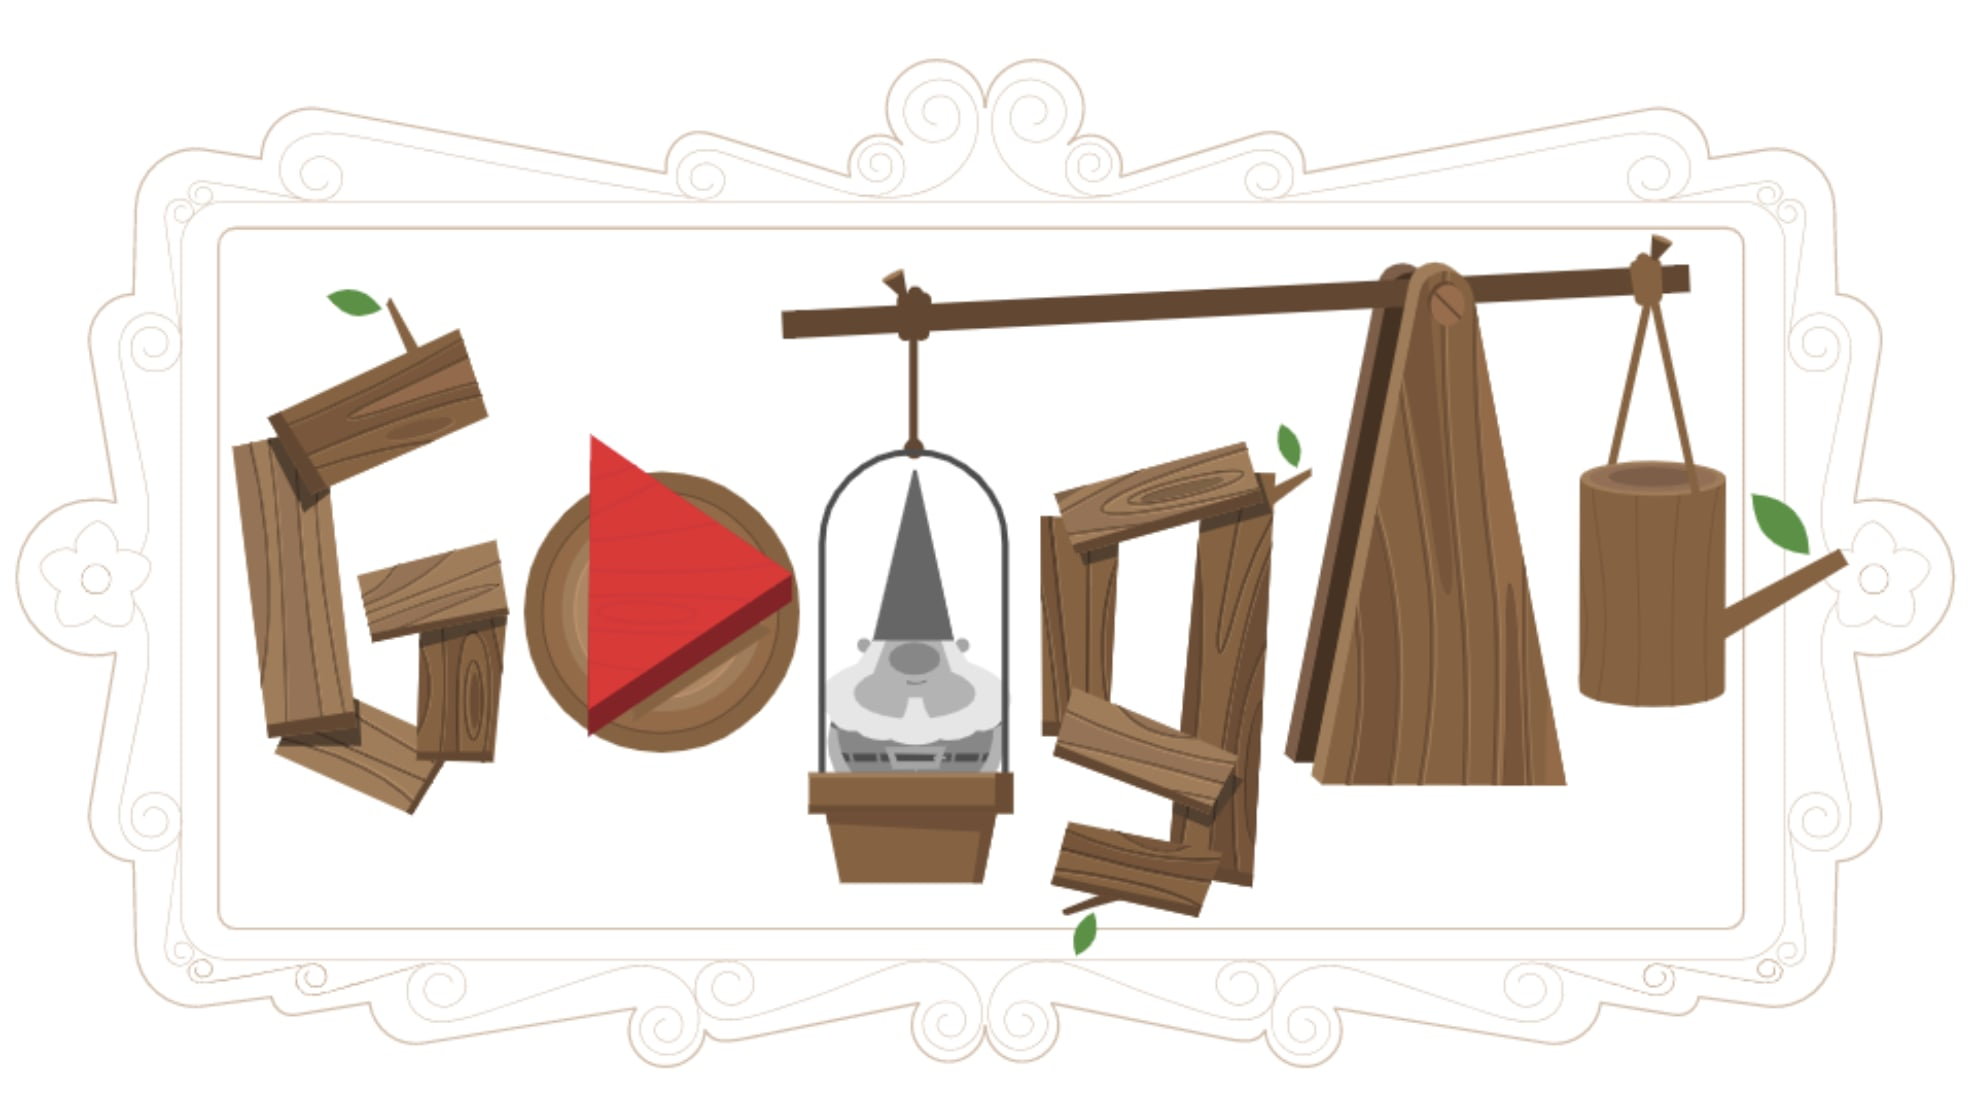 play google s most popular doodle games now popsugar tech play google s most popular doodle games